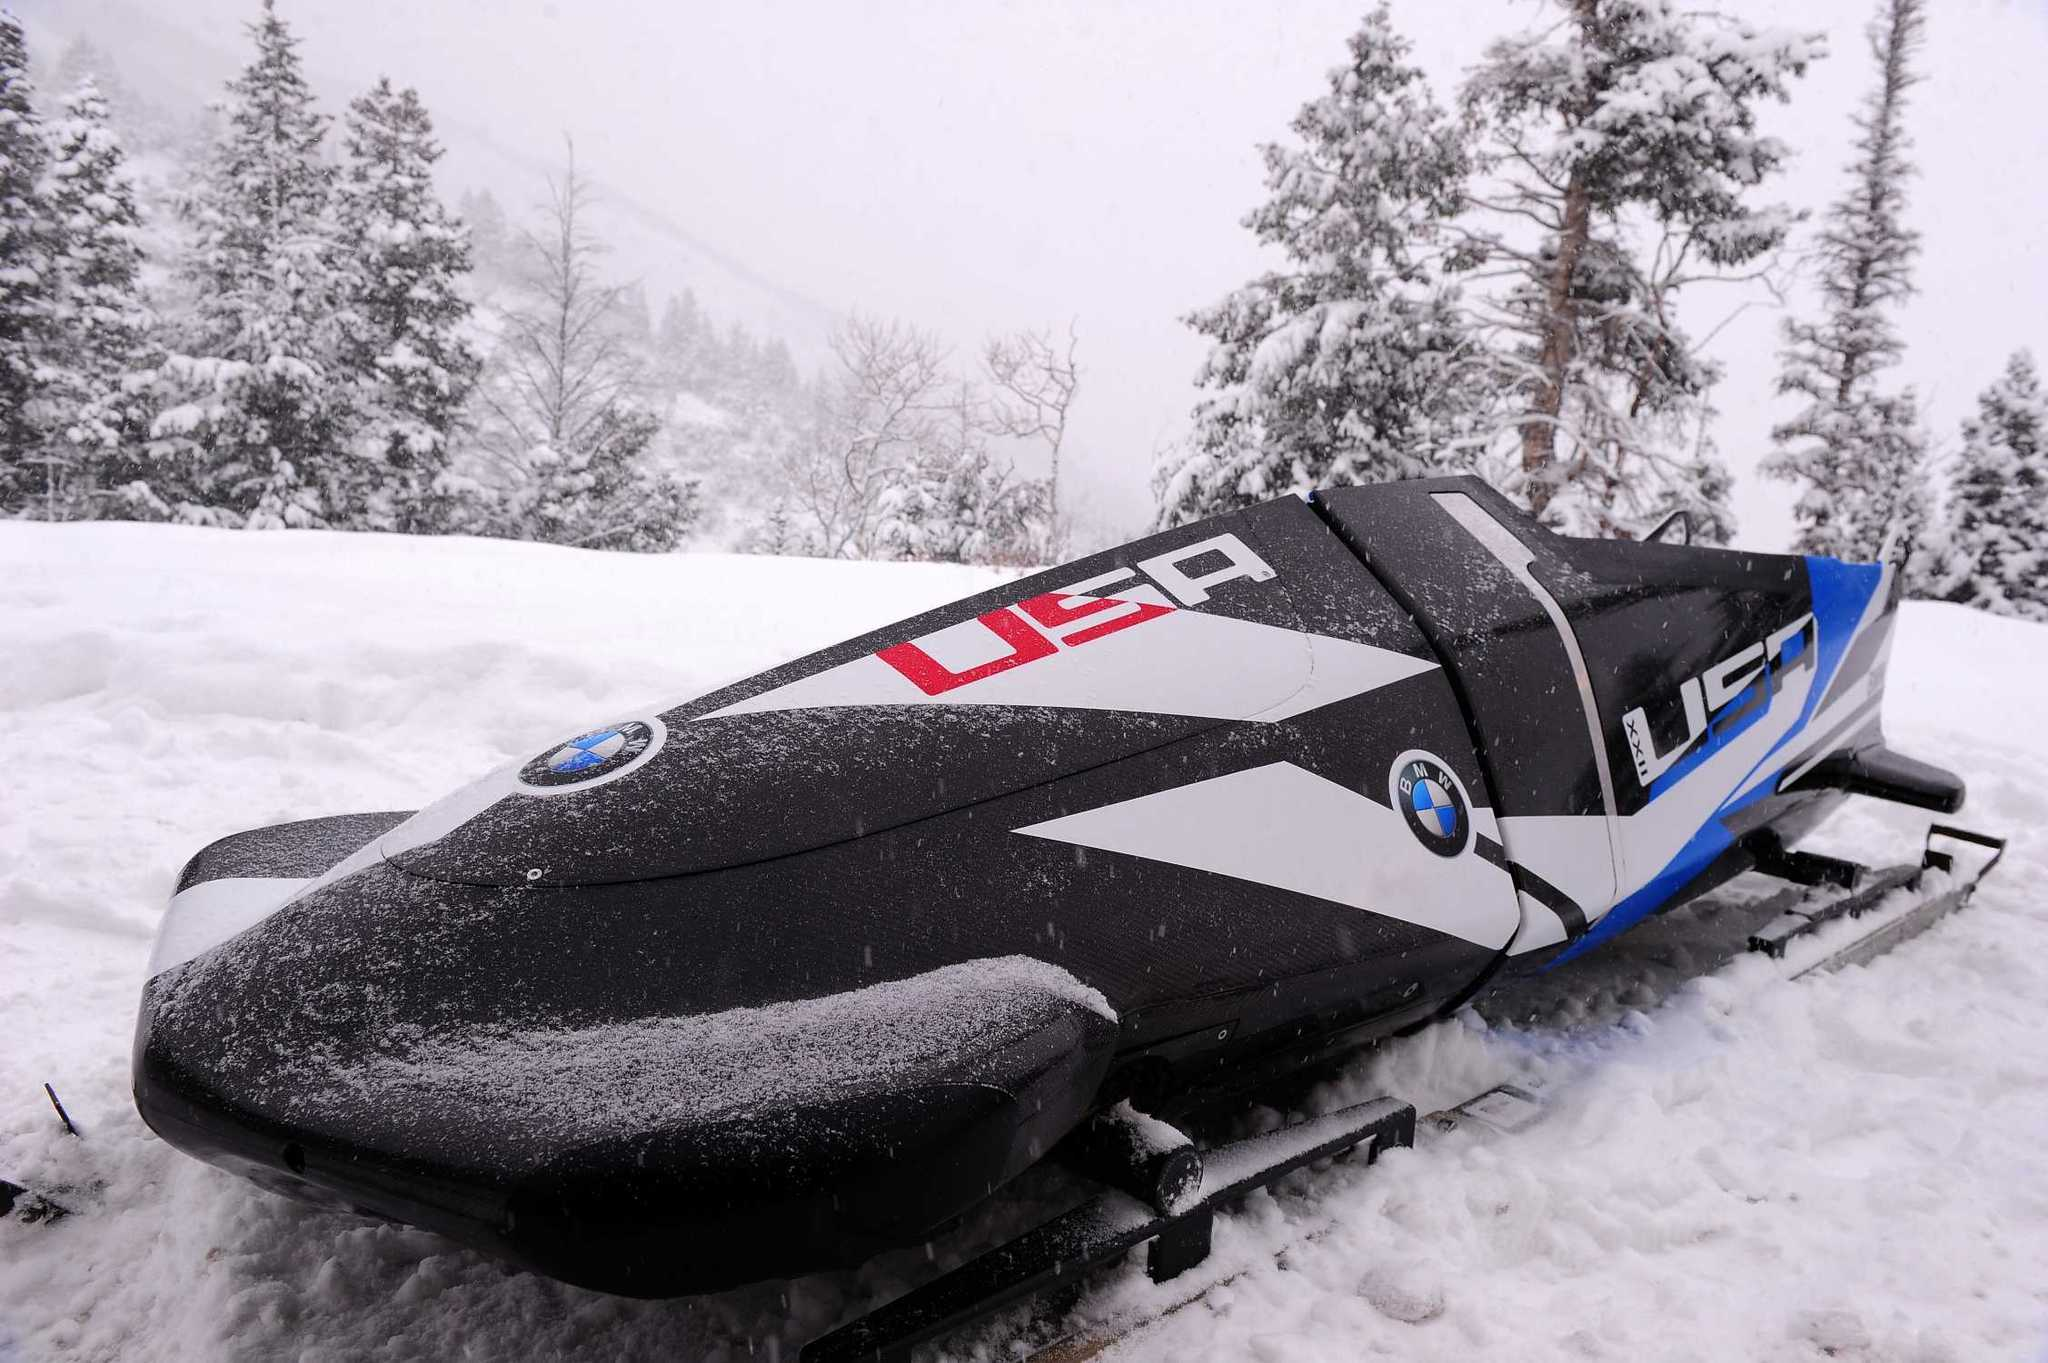 The U.S. men's bobsled team will race a new, BMW-designed two-man bobsled.